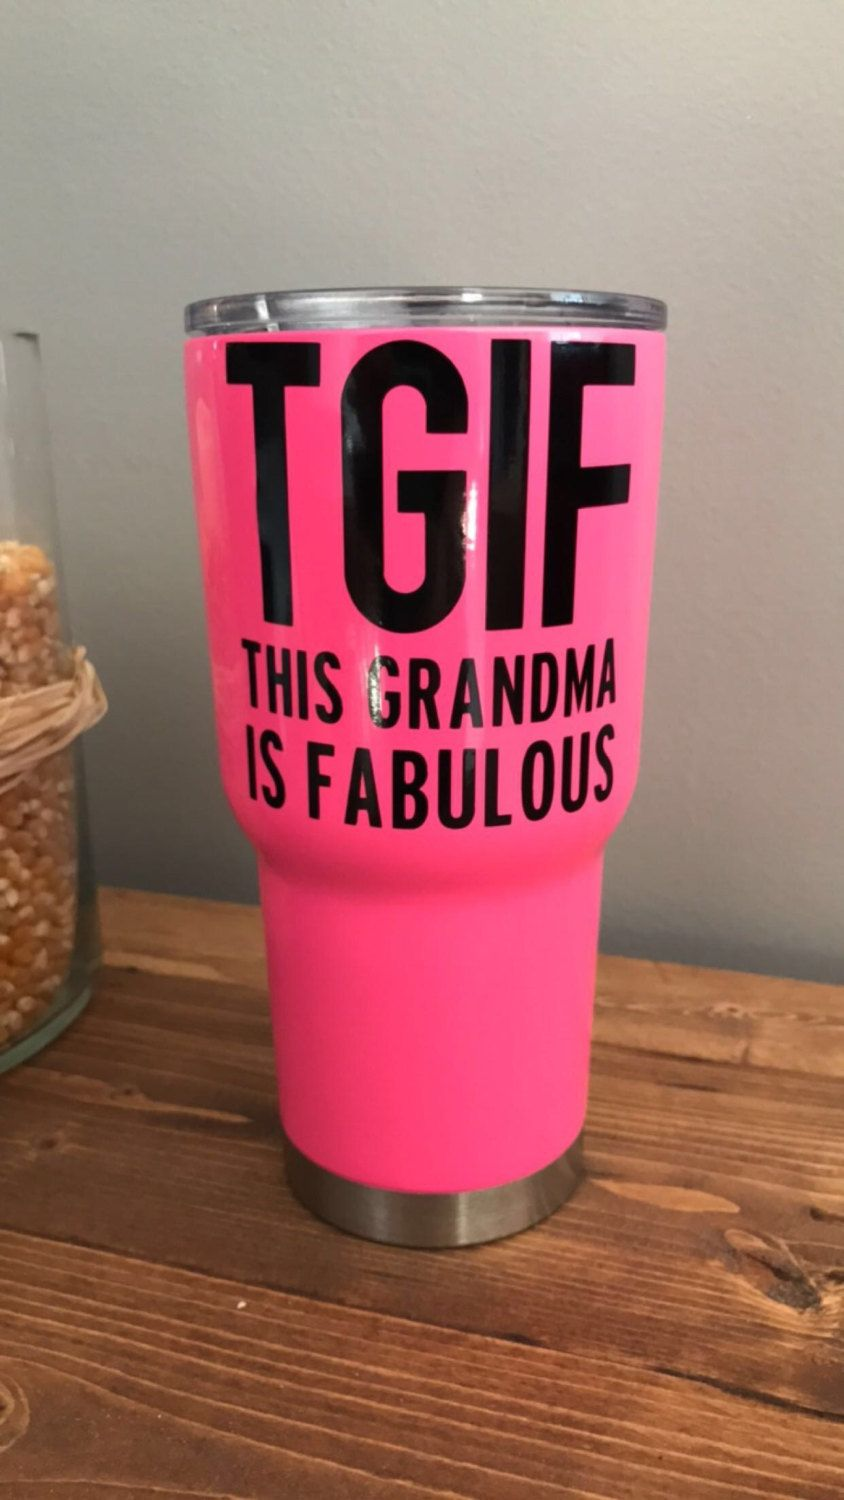 This Grandma is Fabulous, TGIF, cup decal, yeti cup decal